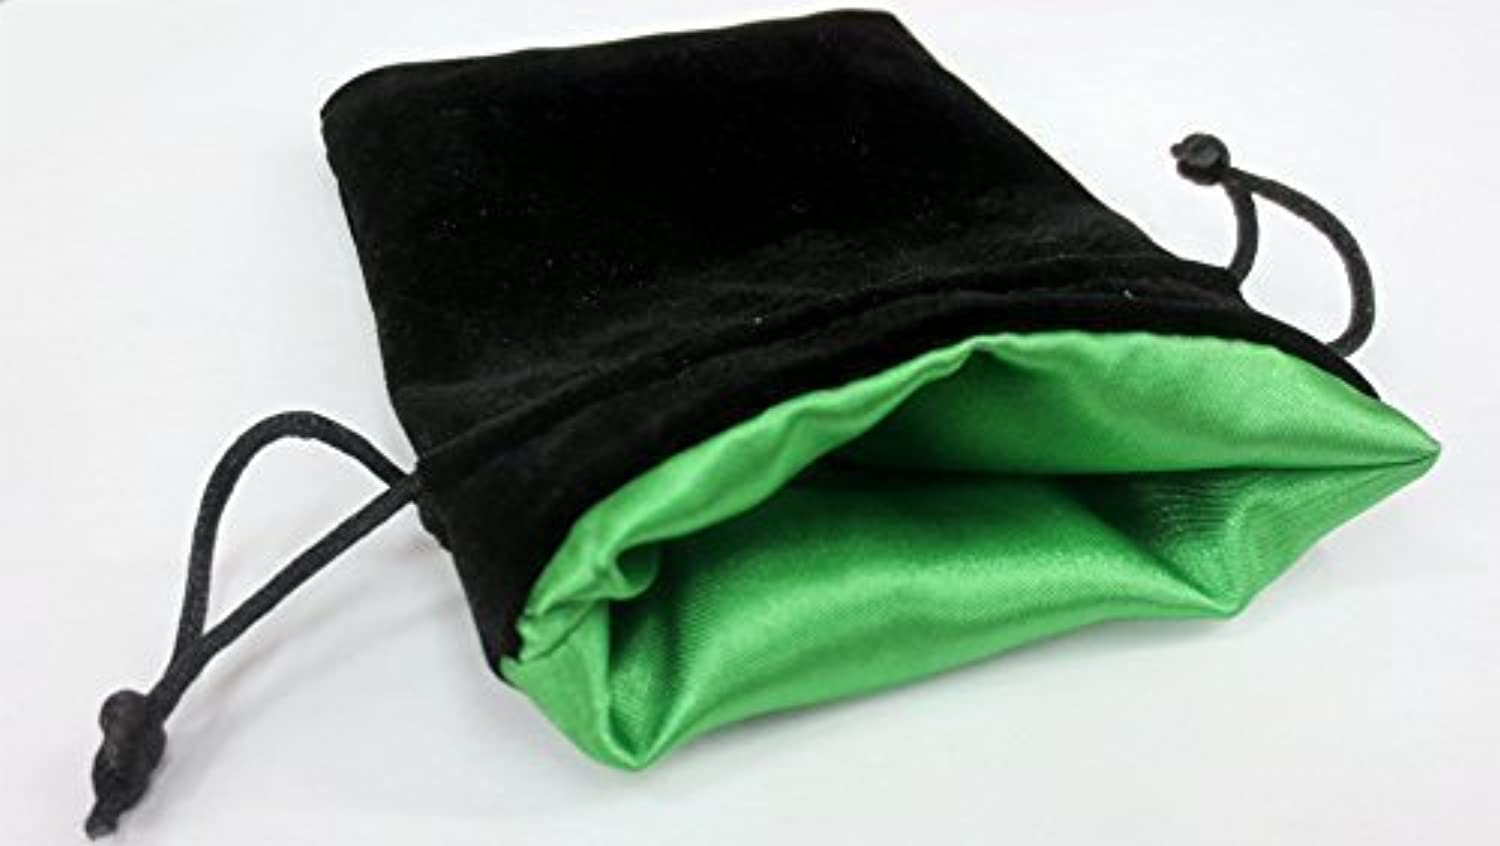 4x5 Elven Green Premium Black Velvet Dice Bag with Strong Green Satin Lining (Dice Bag Capacity is 5 Sets   35 Dice) by DnD Dice